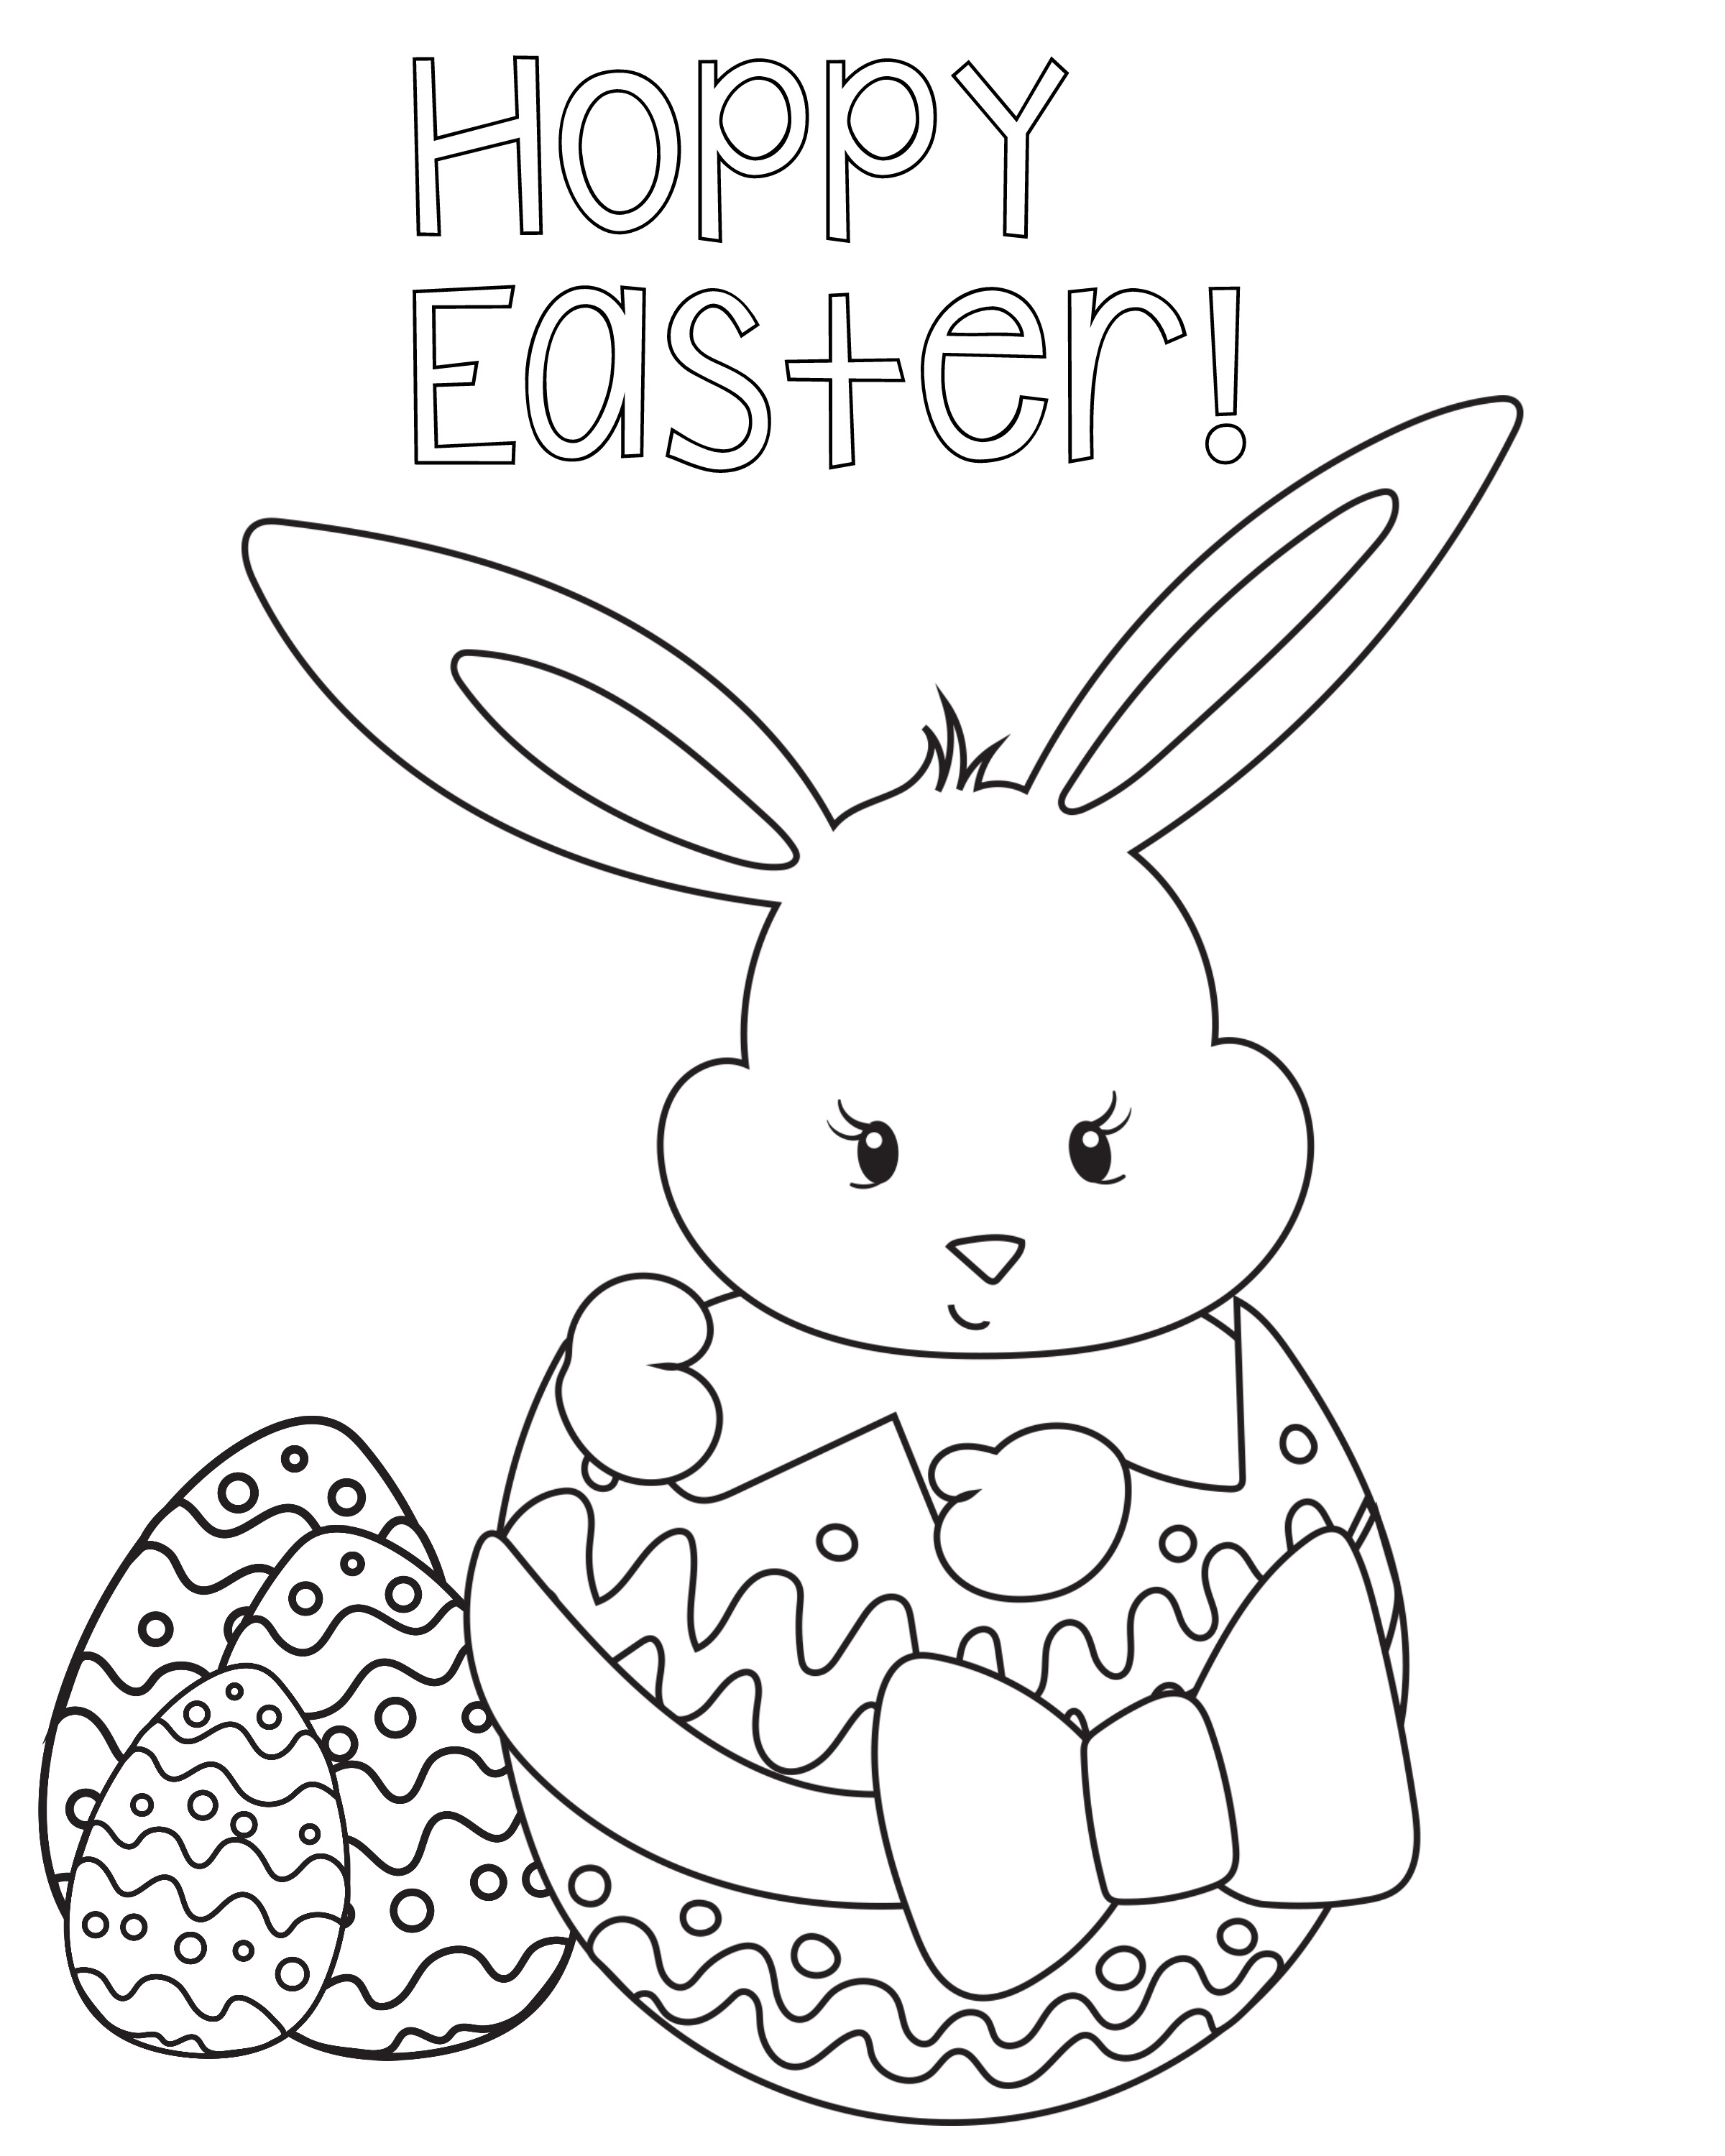 Easter Coloring Pages For Kids - Crazy Little Projects - Free Coloring Printables